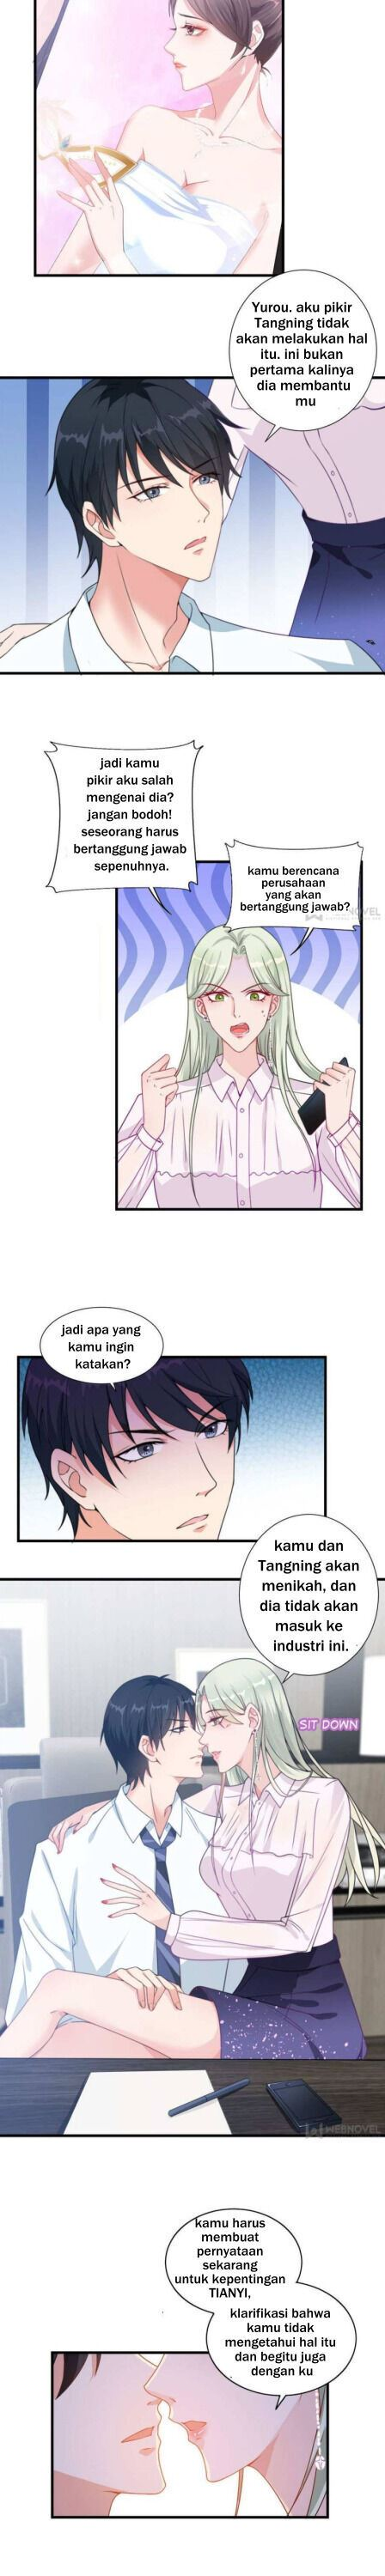 Trial Marriage Husband: Need to Work Hard Chapter 4